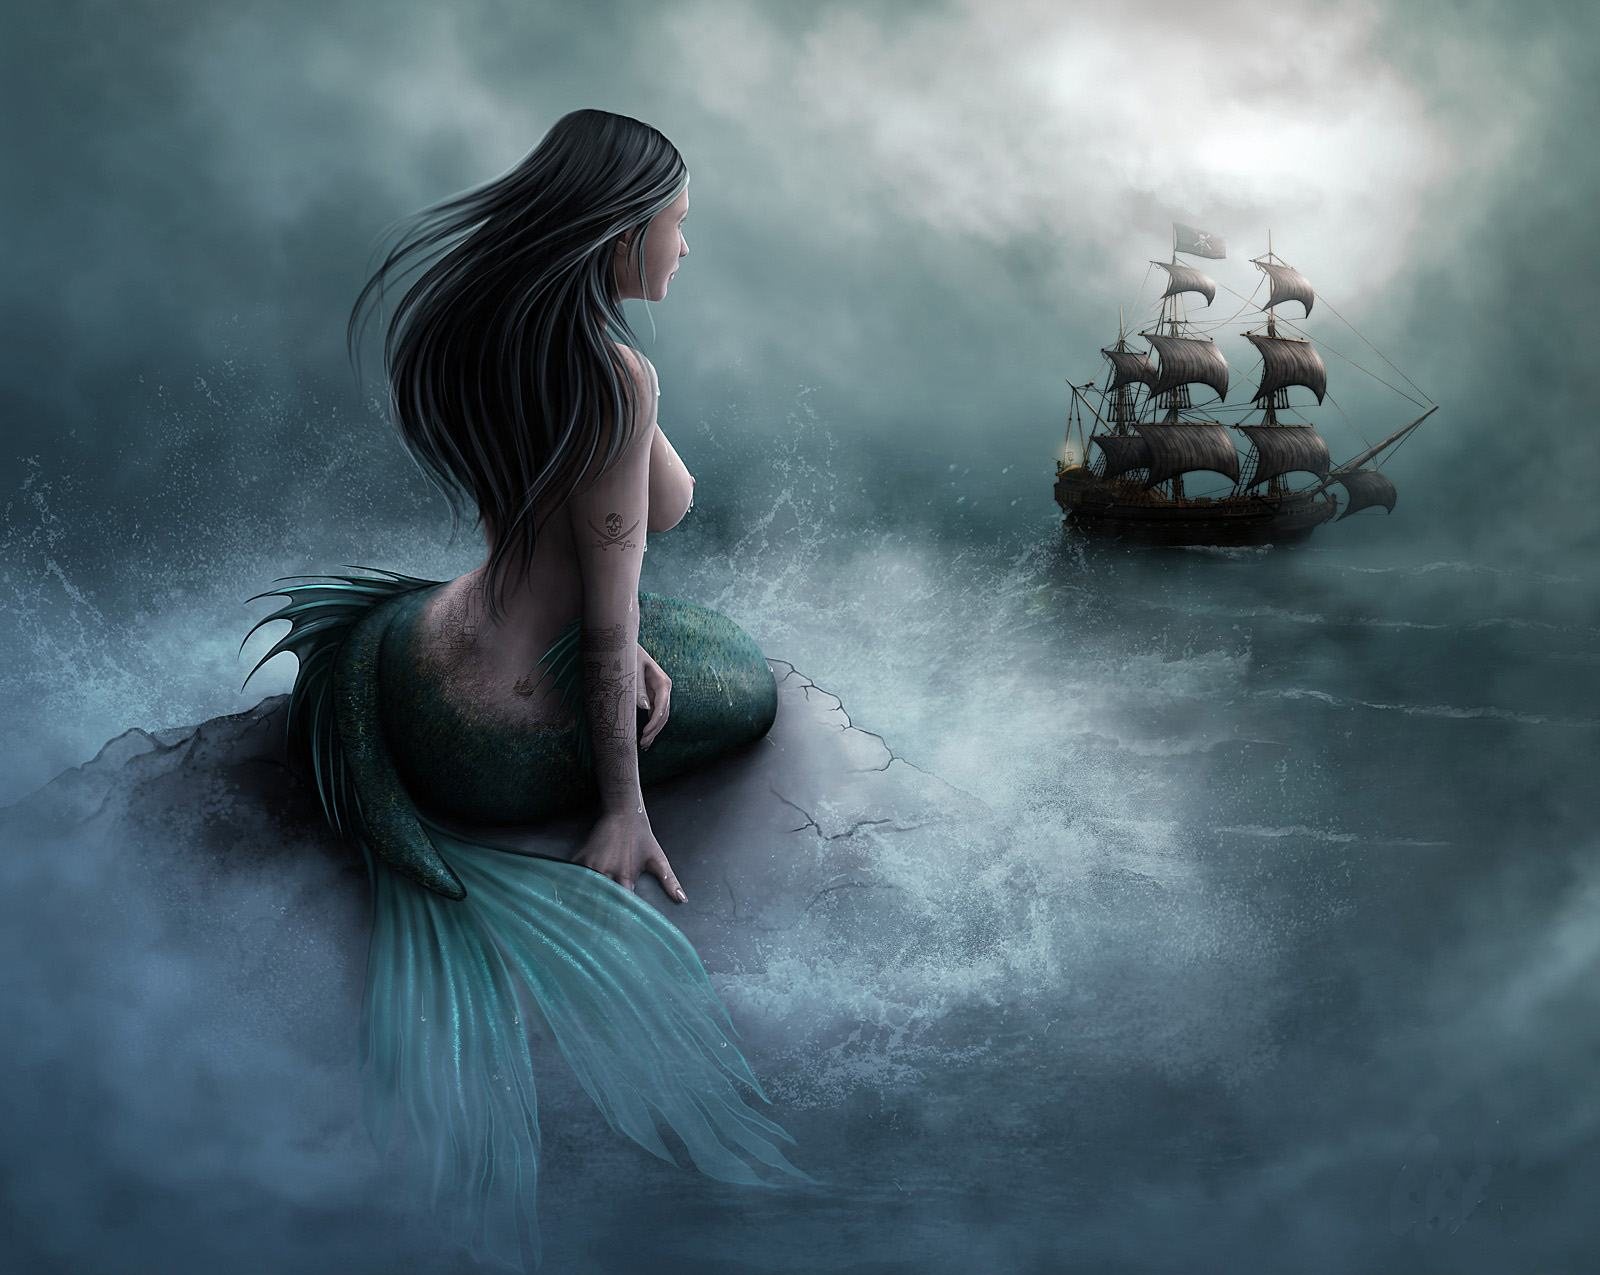 Unknown Artist Mermaid and pirate ship